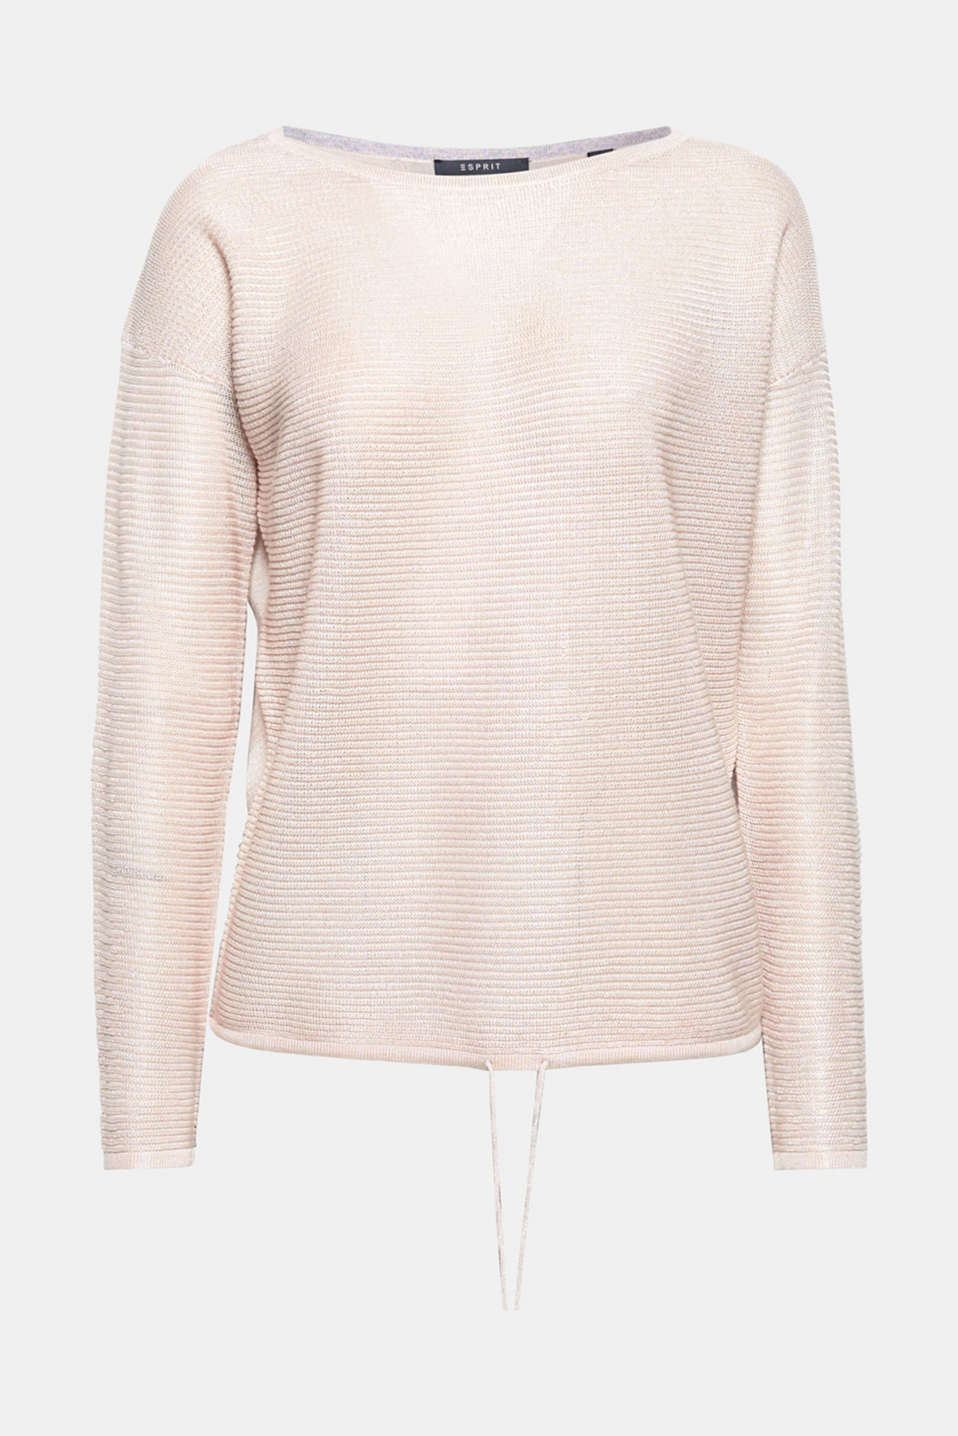 This fine rib jumper with a casual drawstring hem is airy and delicate!